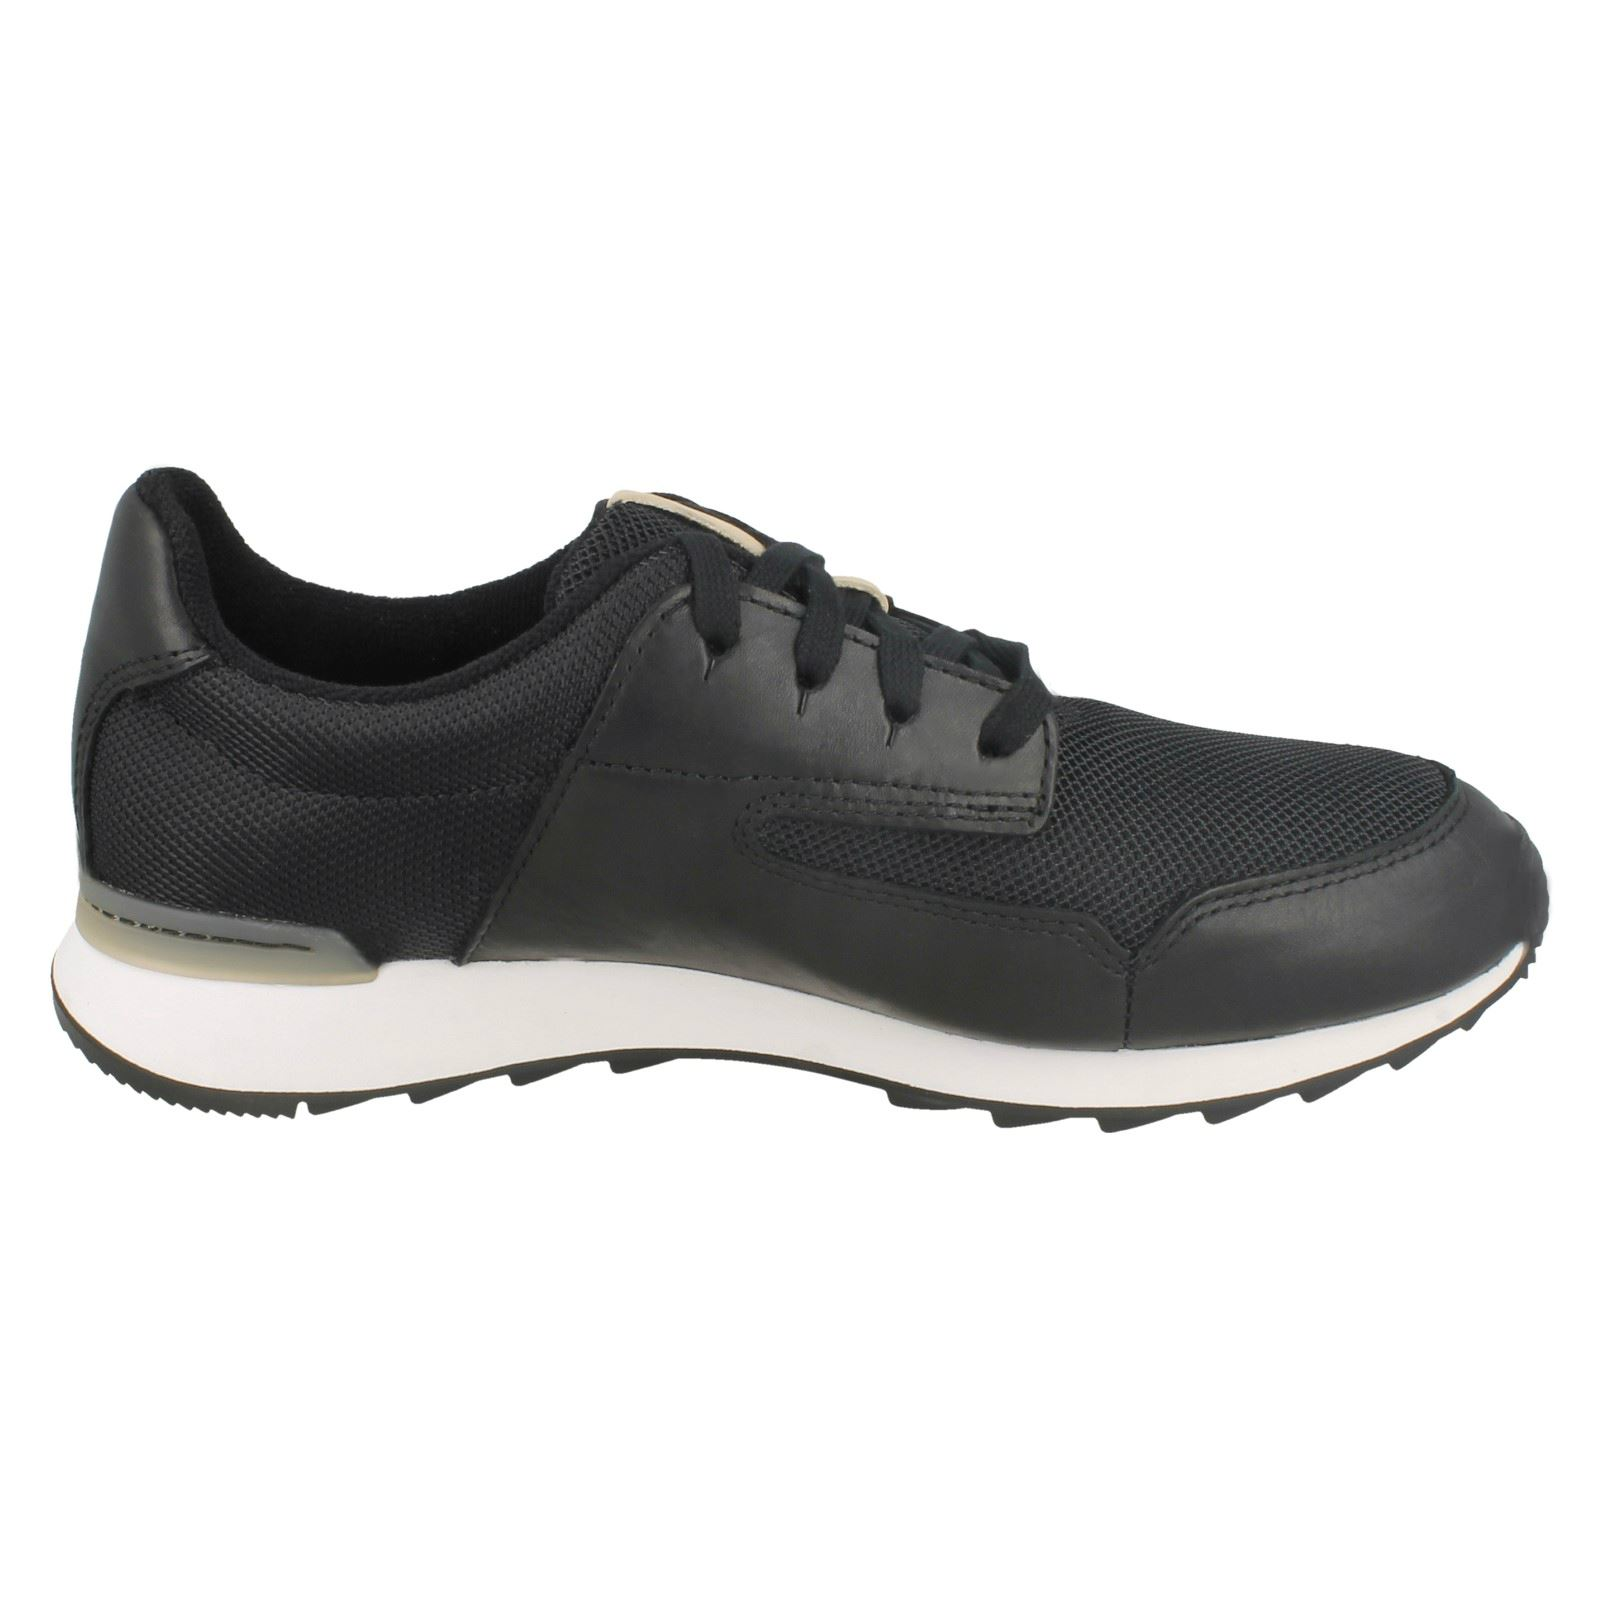 Ladies Clarks Leather Lace Up Trainer Style Shoes *Floura Mix*